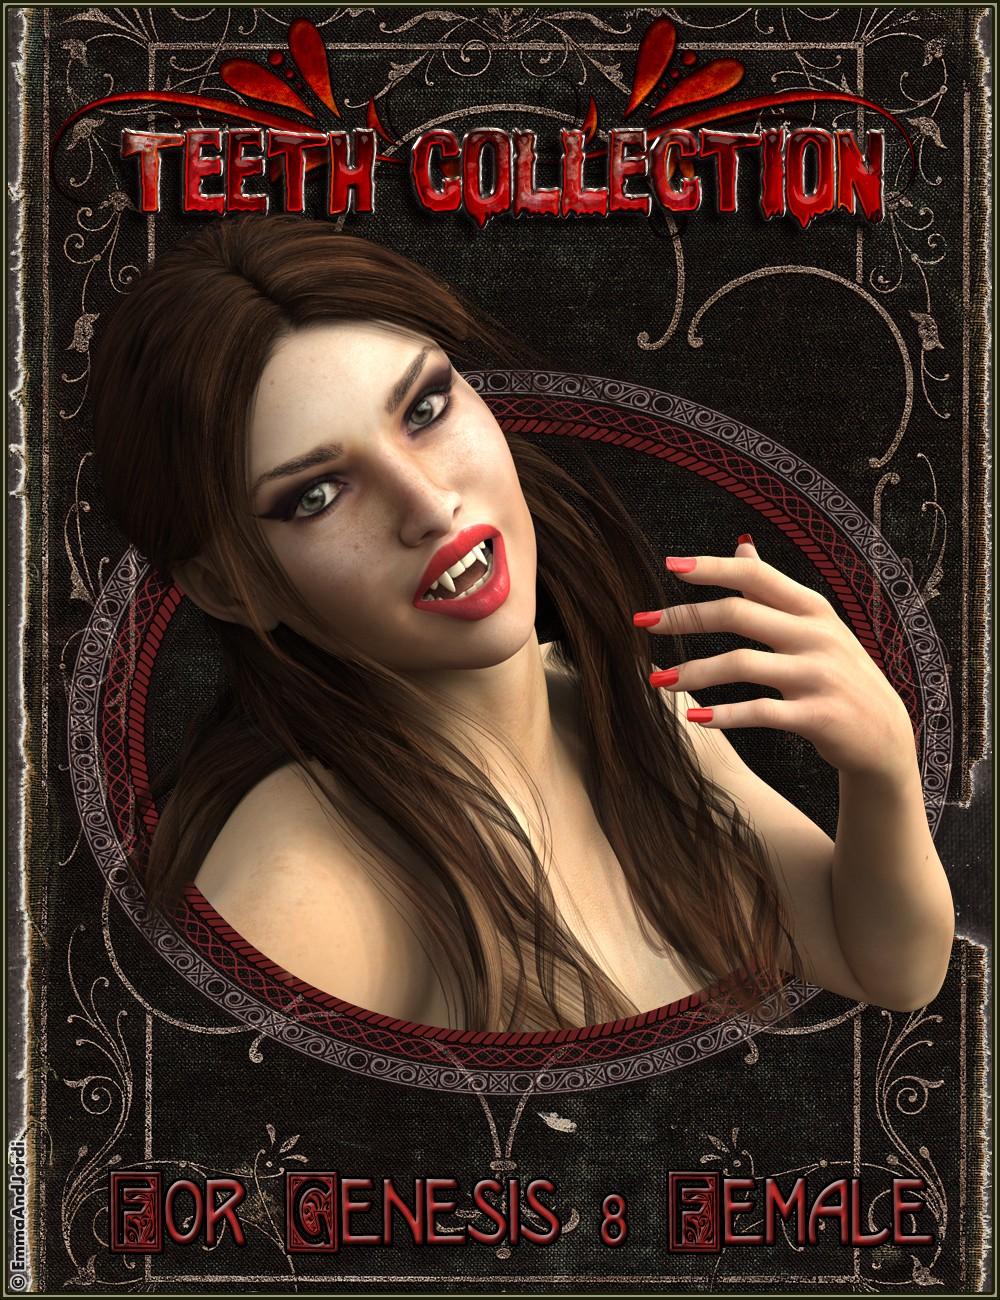 EJ Teeth Collection for Genesis 8 Female(s)